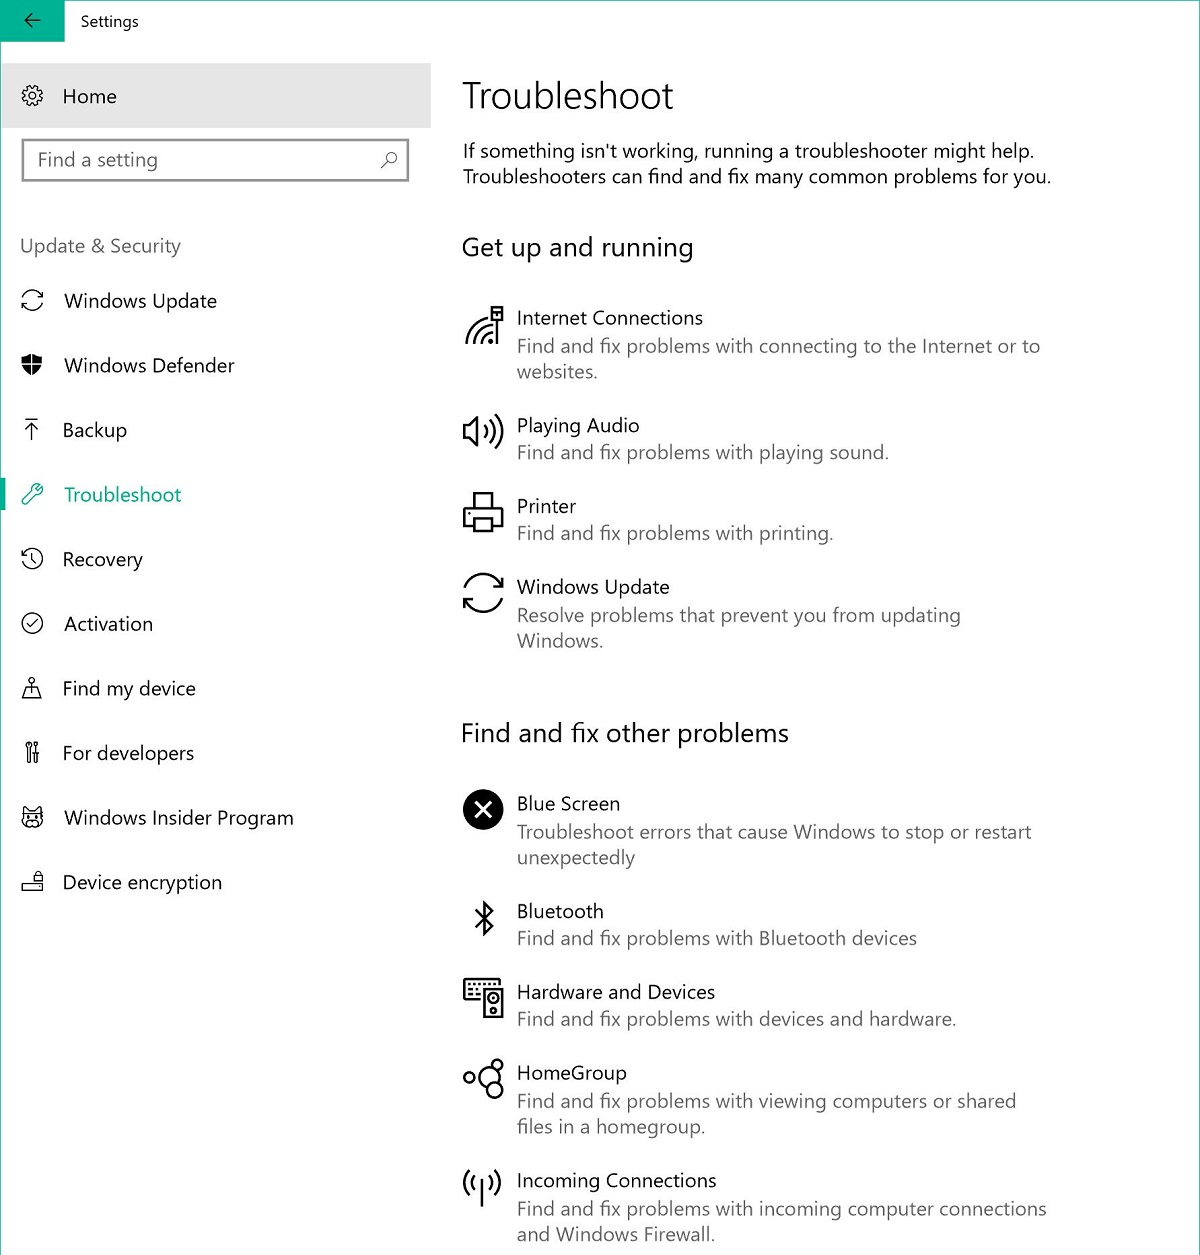 Screenshot of Troubleshoot tab in Windows settings